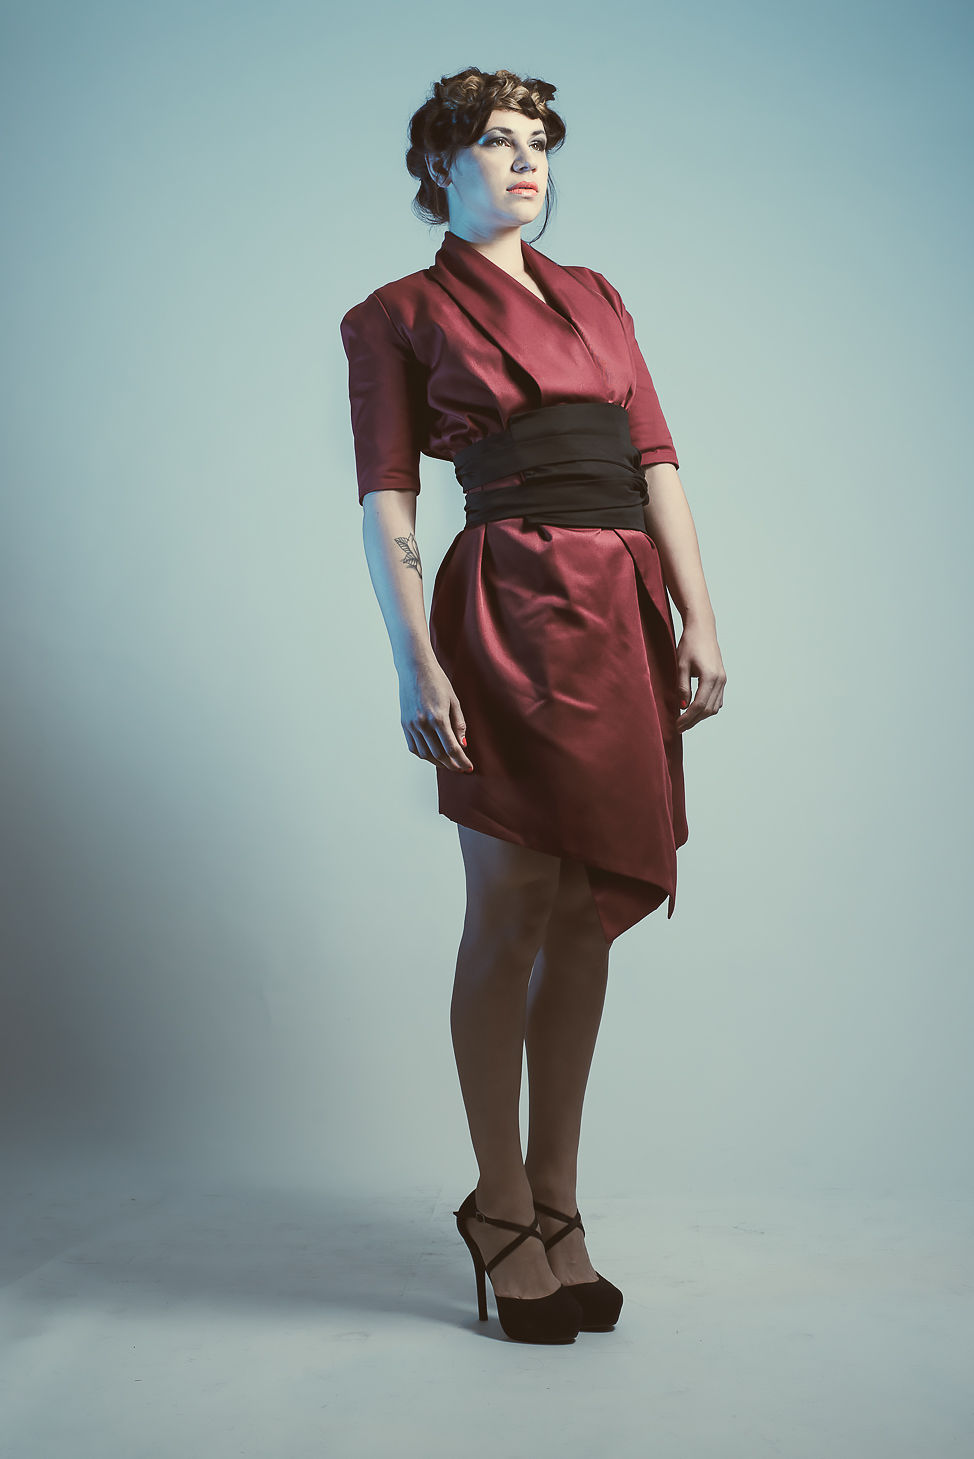 zaramia-ava-zaramiaava-leeds-fashion-designer-ethical-sustainable-tailored-minimalist-mai-burgundy-jacket-dress-belt-versatile-drape-cowl-styling-womenswear-models-photoshoot-shrine-hairdressers-58